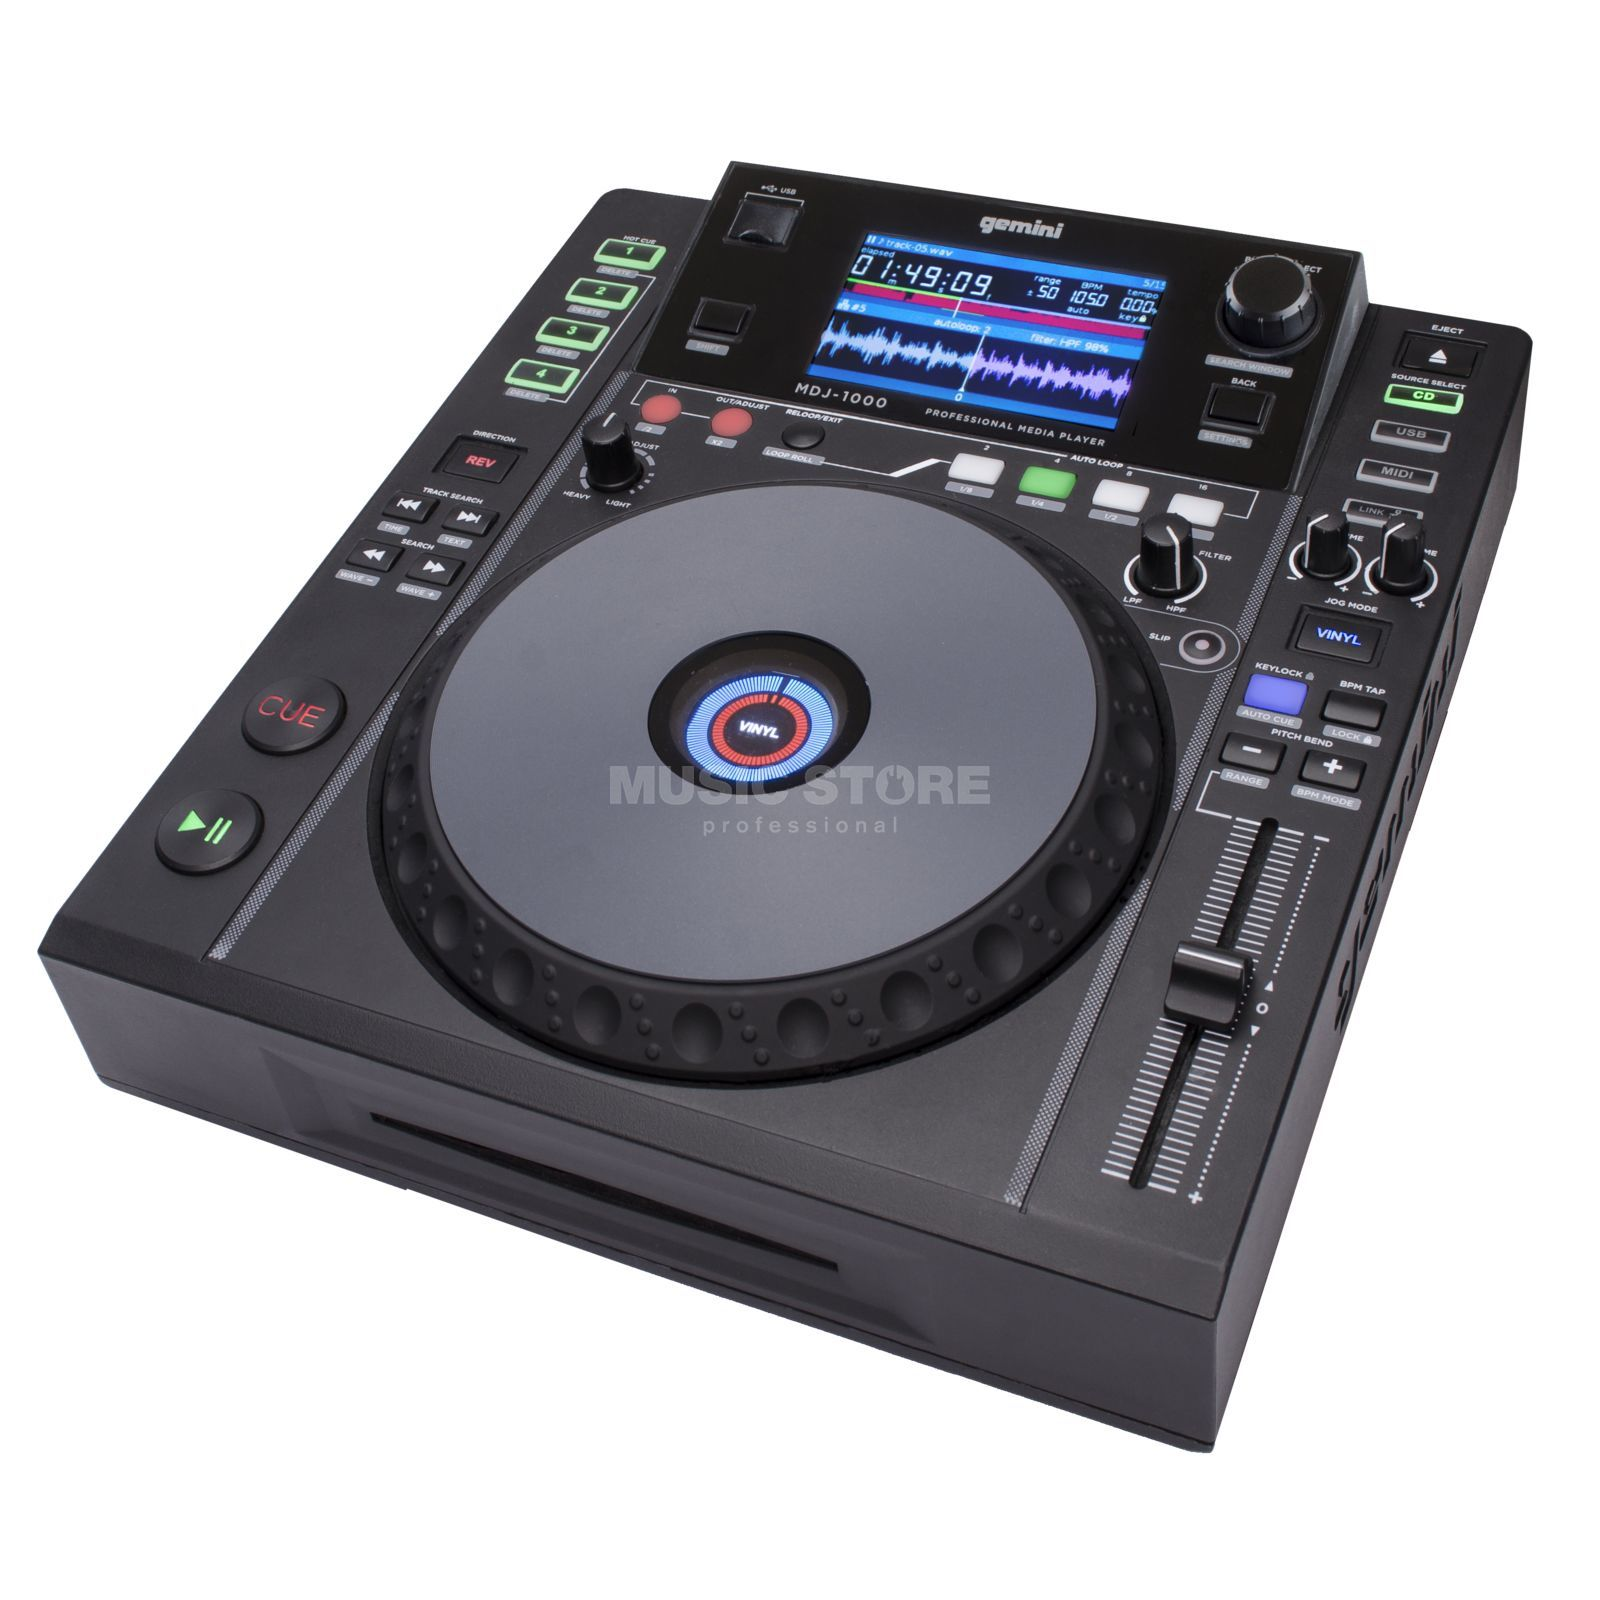 Gemini MDJ-1000 DJ Multimedia Player Product Image